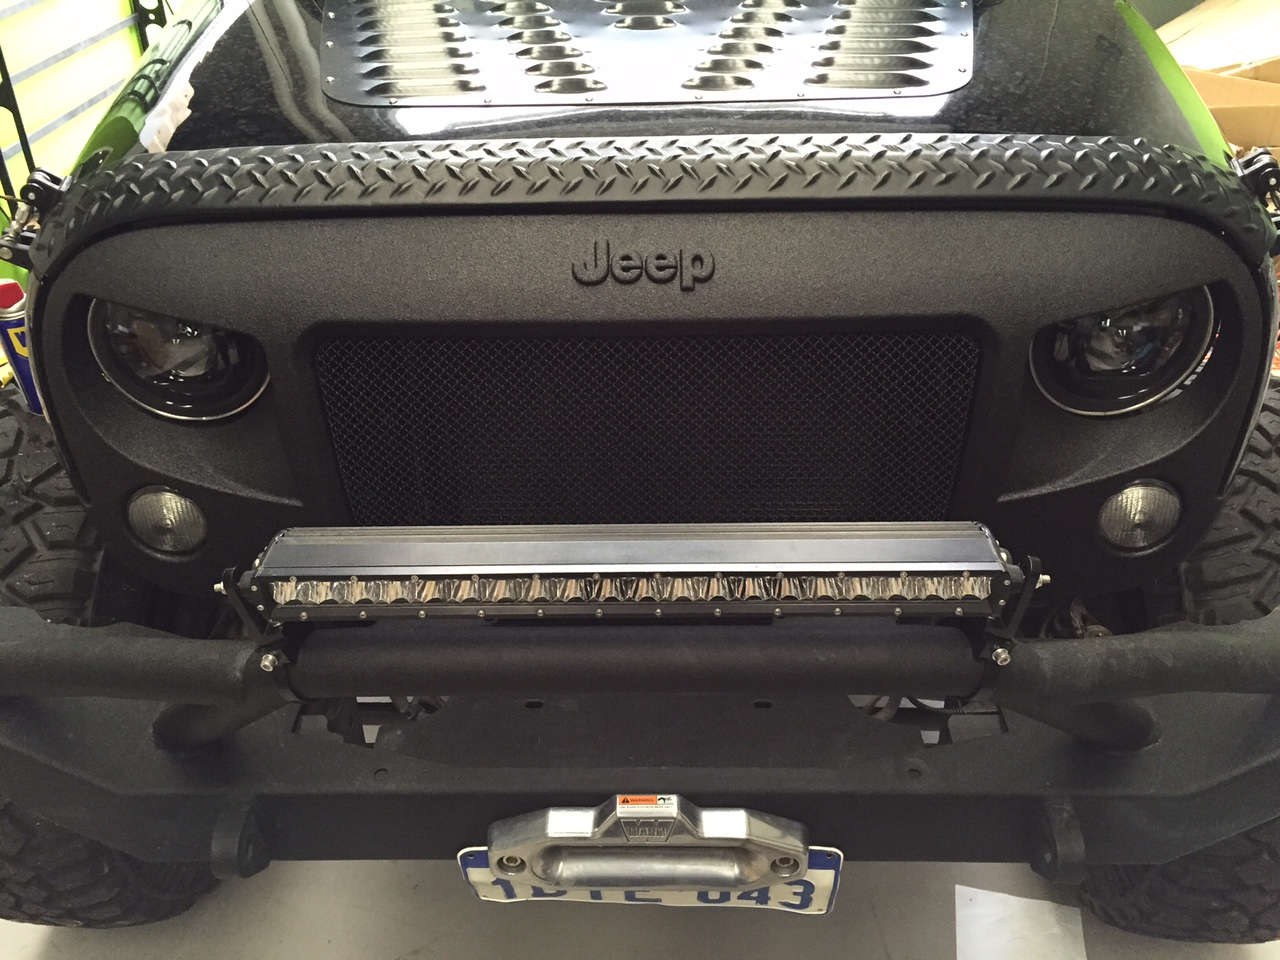 Black Signature Ripple Coating For Jeep Wrangler Grill